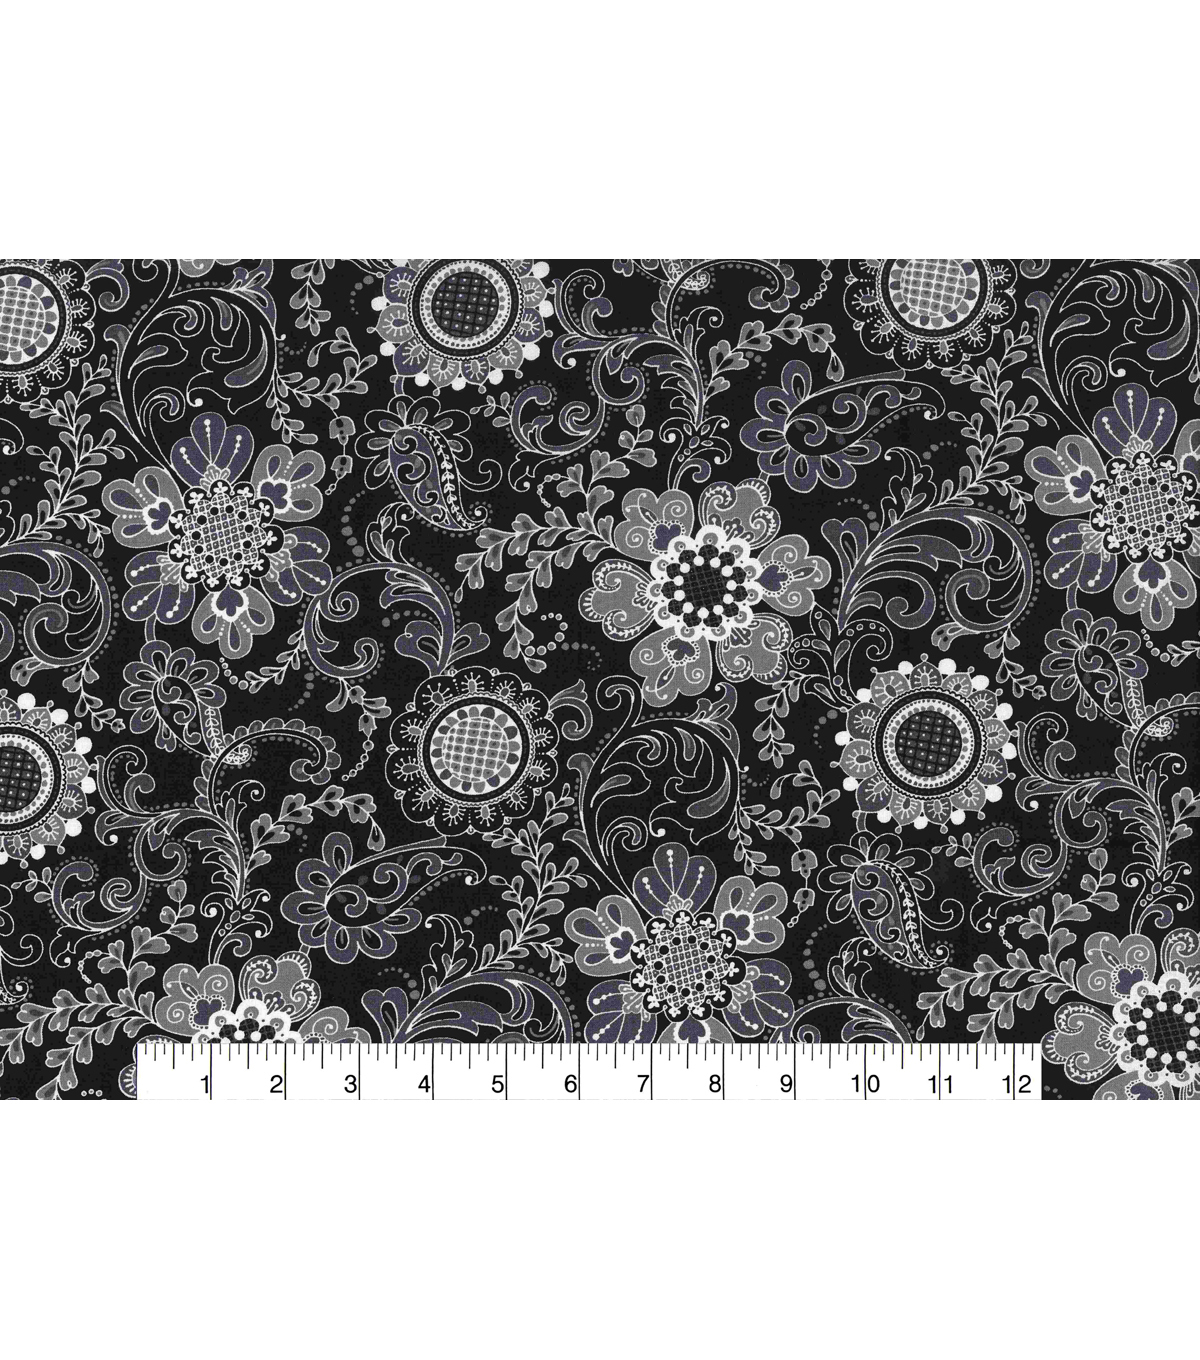 Keepsake Calico Cotton Fabric -Floral Medallion Gray